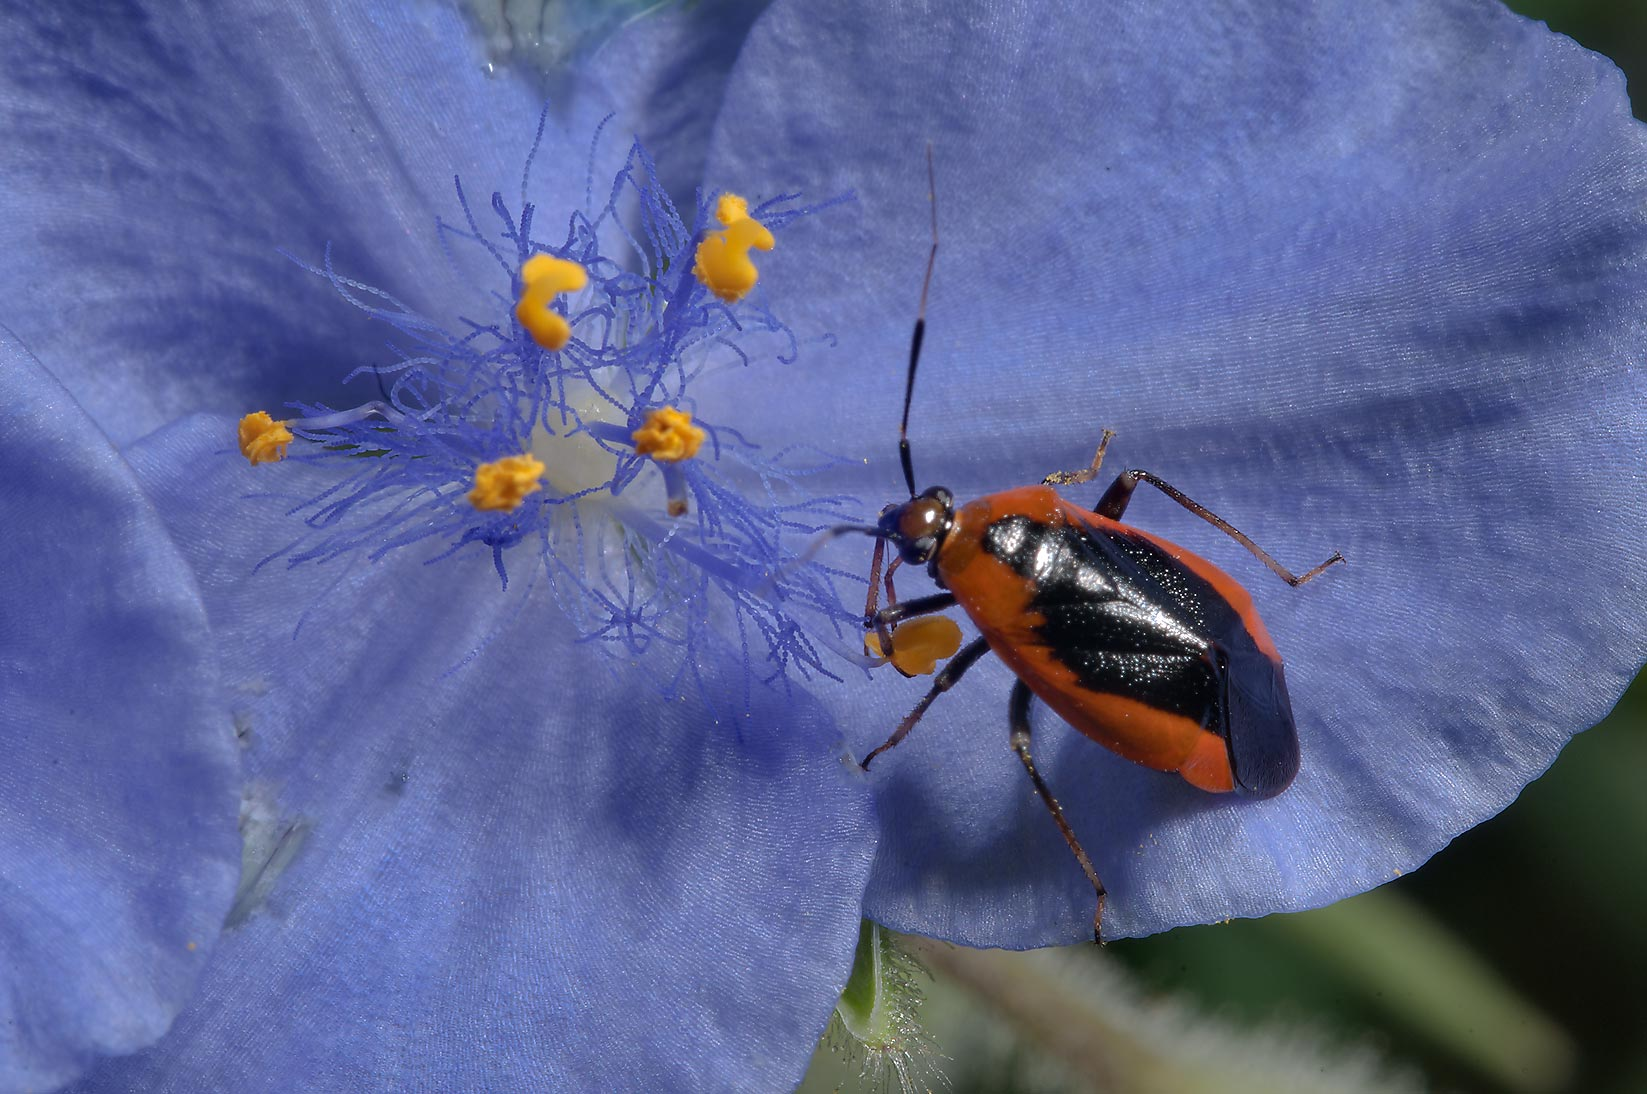 A bug on spiderwort (Tradescantia) in Birch Creek Unit of Lake Somerville State Park